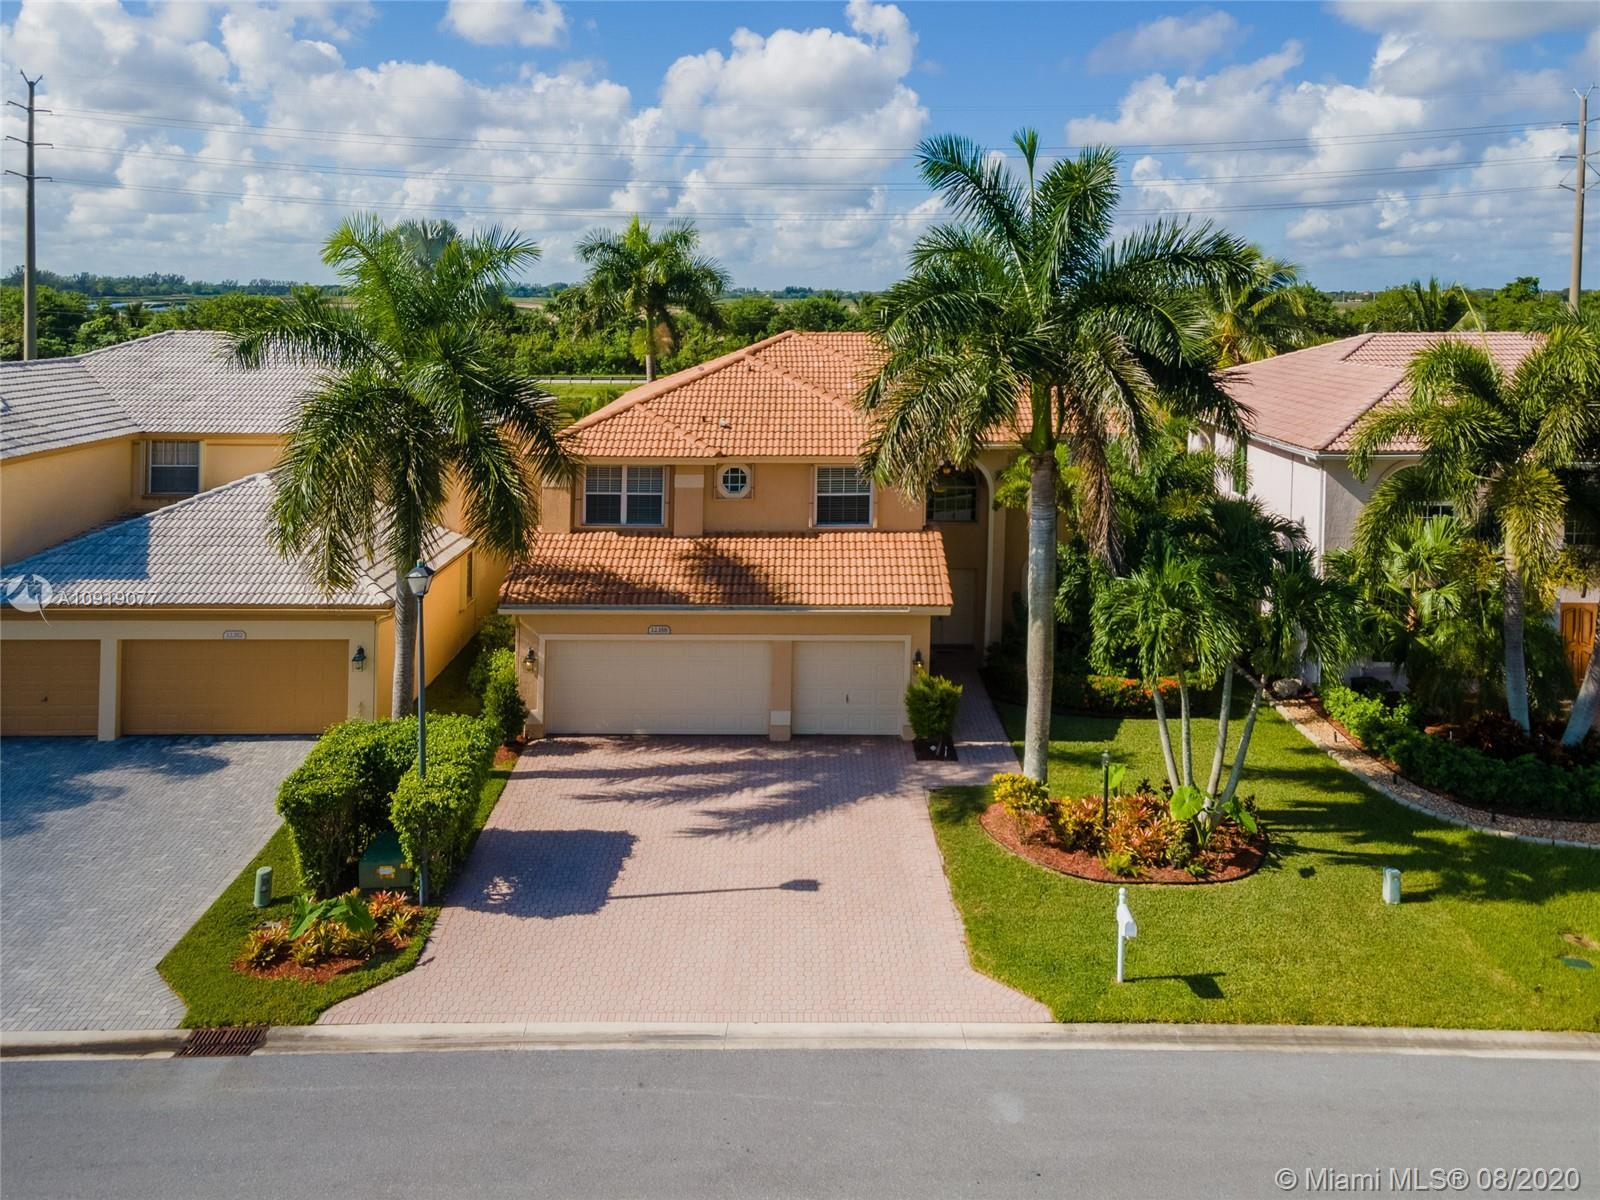 NEW TO THE MARKET VERY SPACIOUS MOVE IN READY HOME IN POPULAR BOCA WINDS COMMUNITY IN BOCA RATON!!!